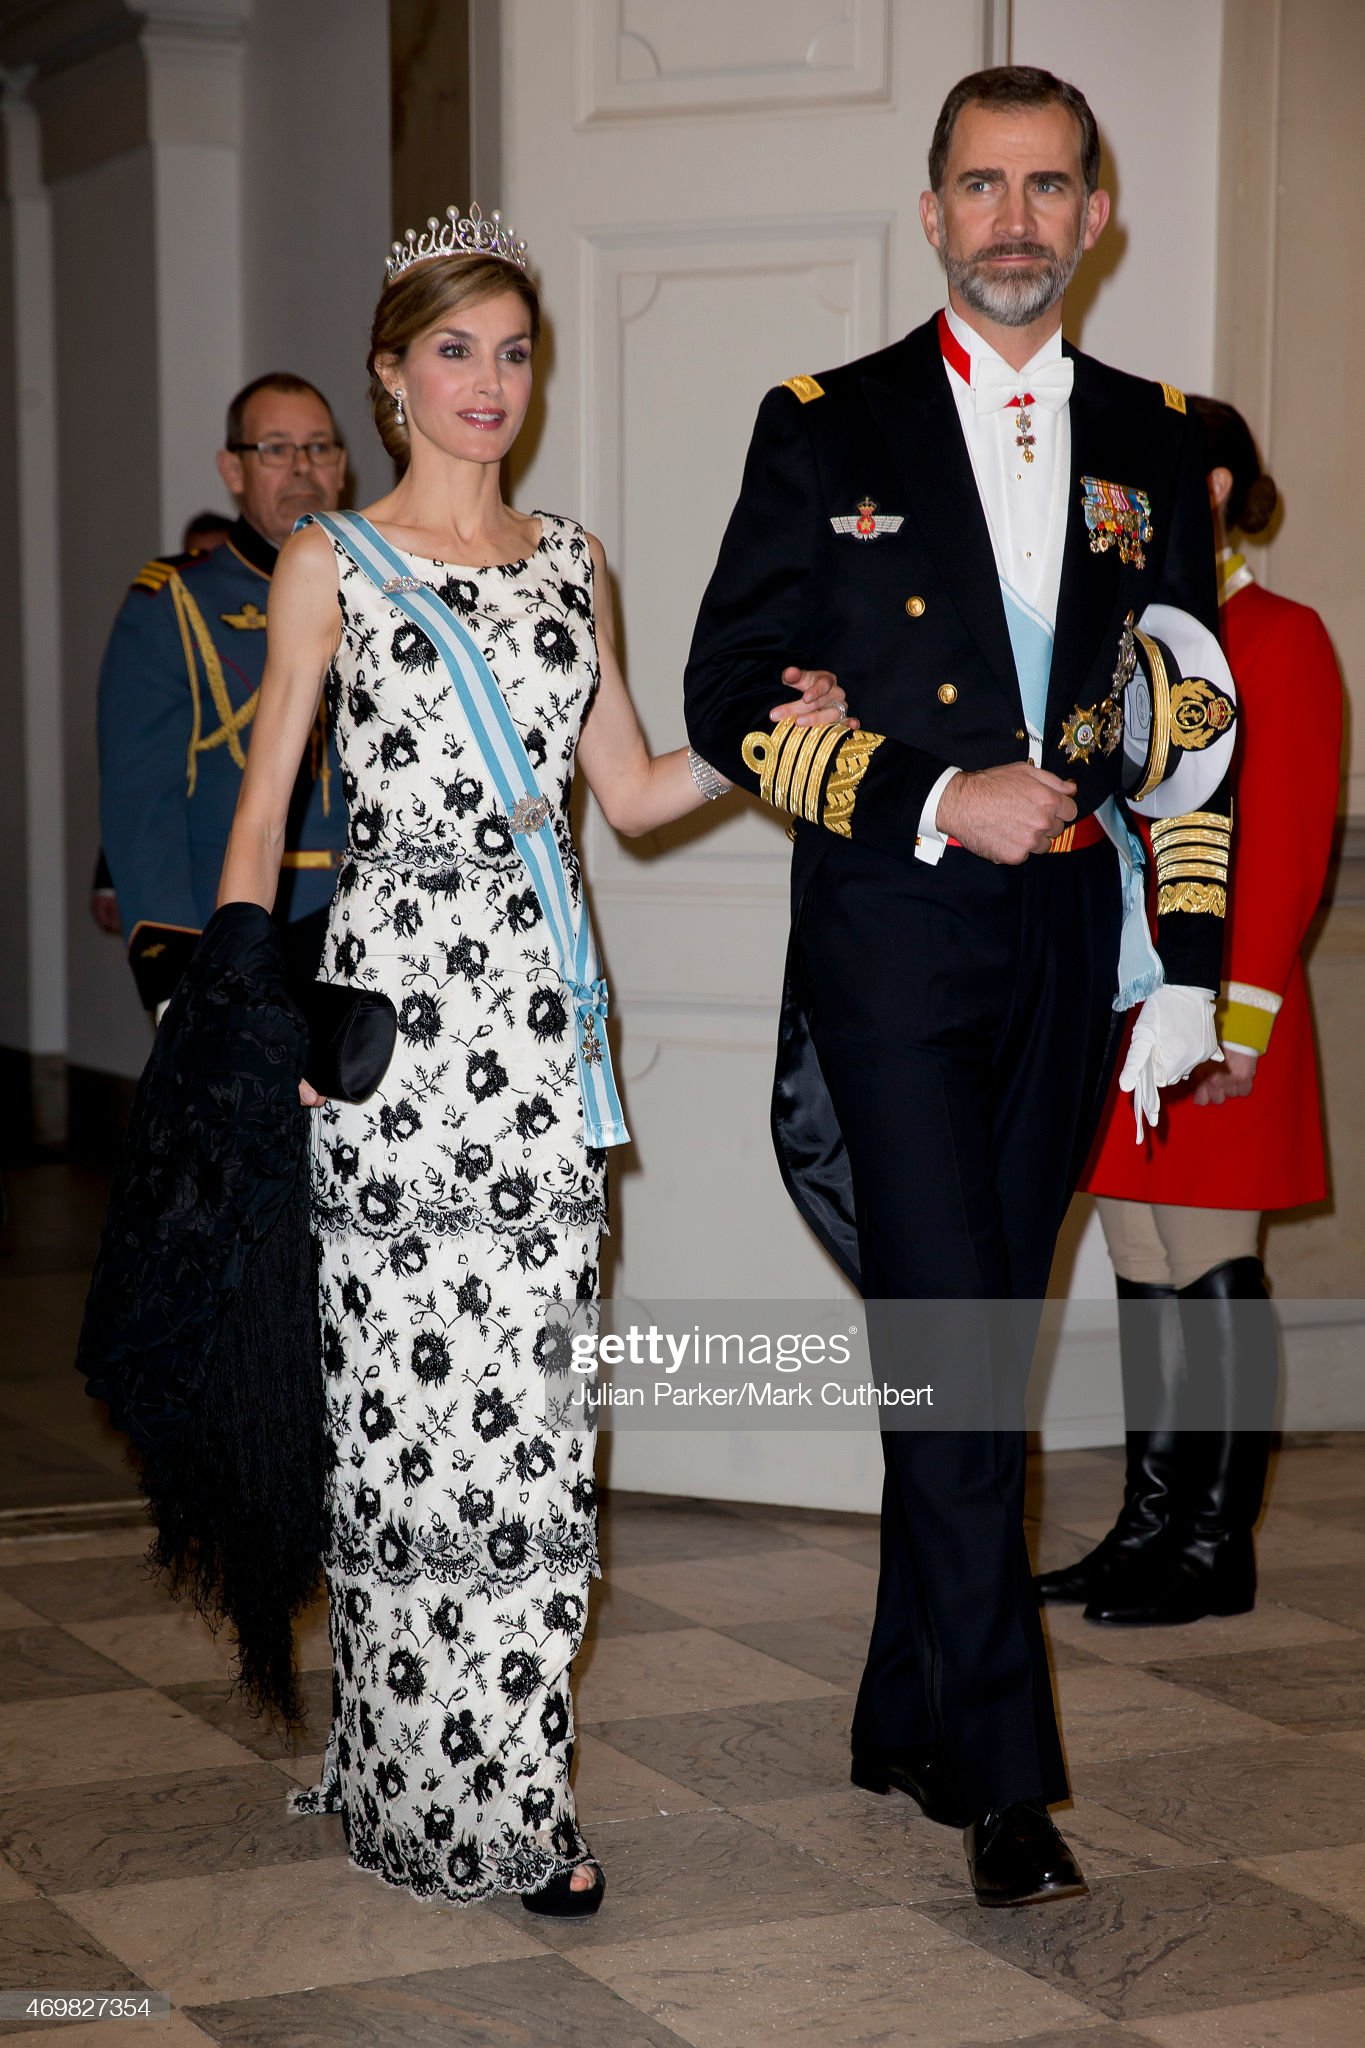 Festivities For The 75th Birthday Of Queen Margrethe II Of Denmark : News Photo